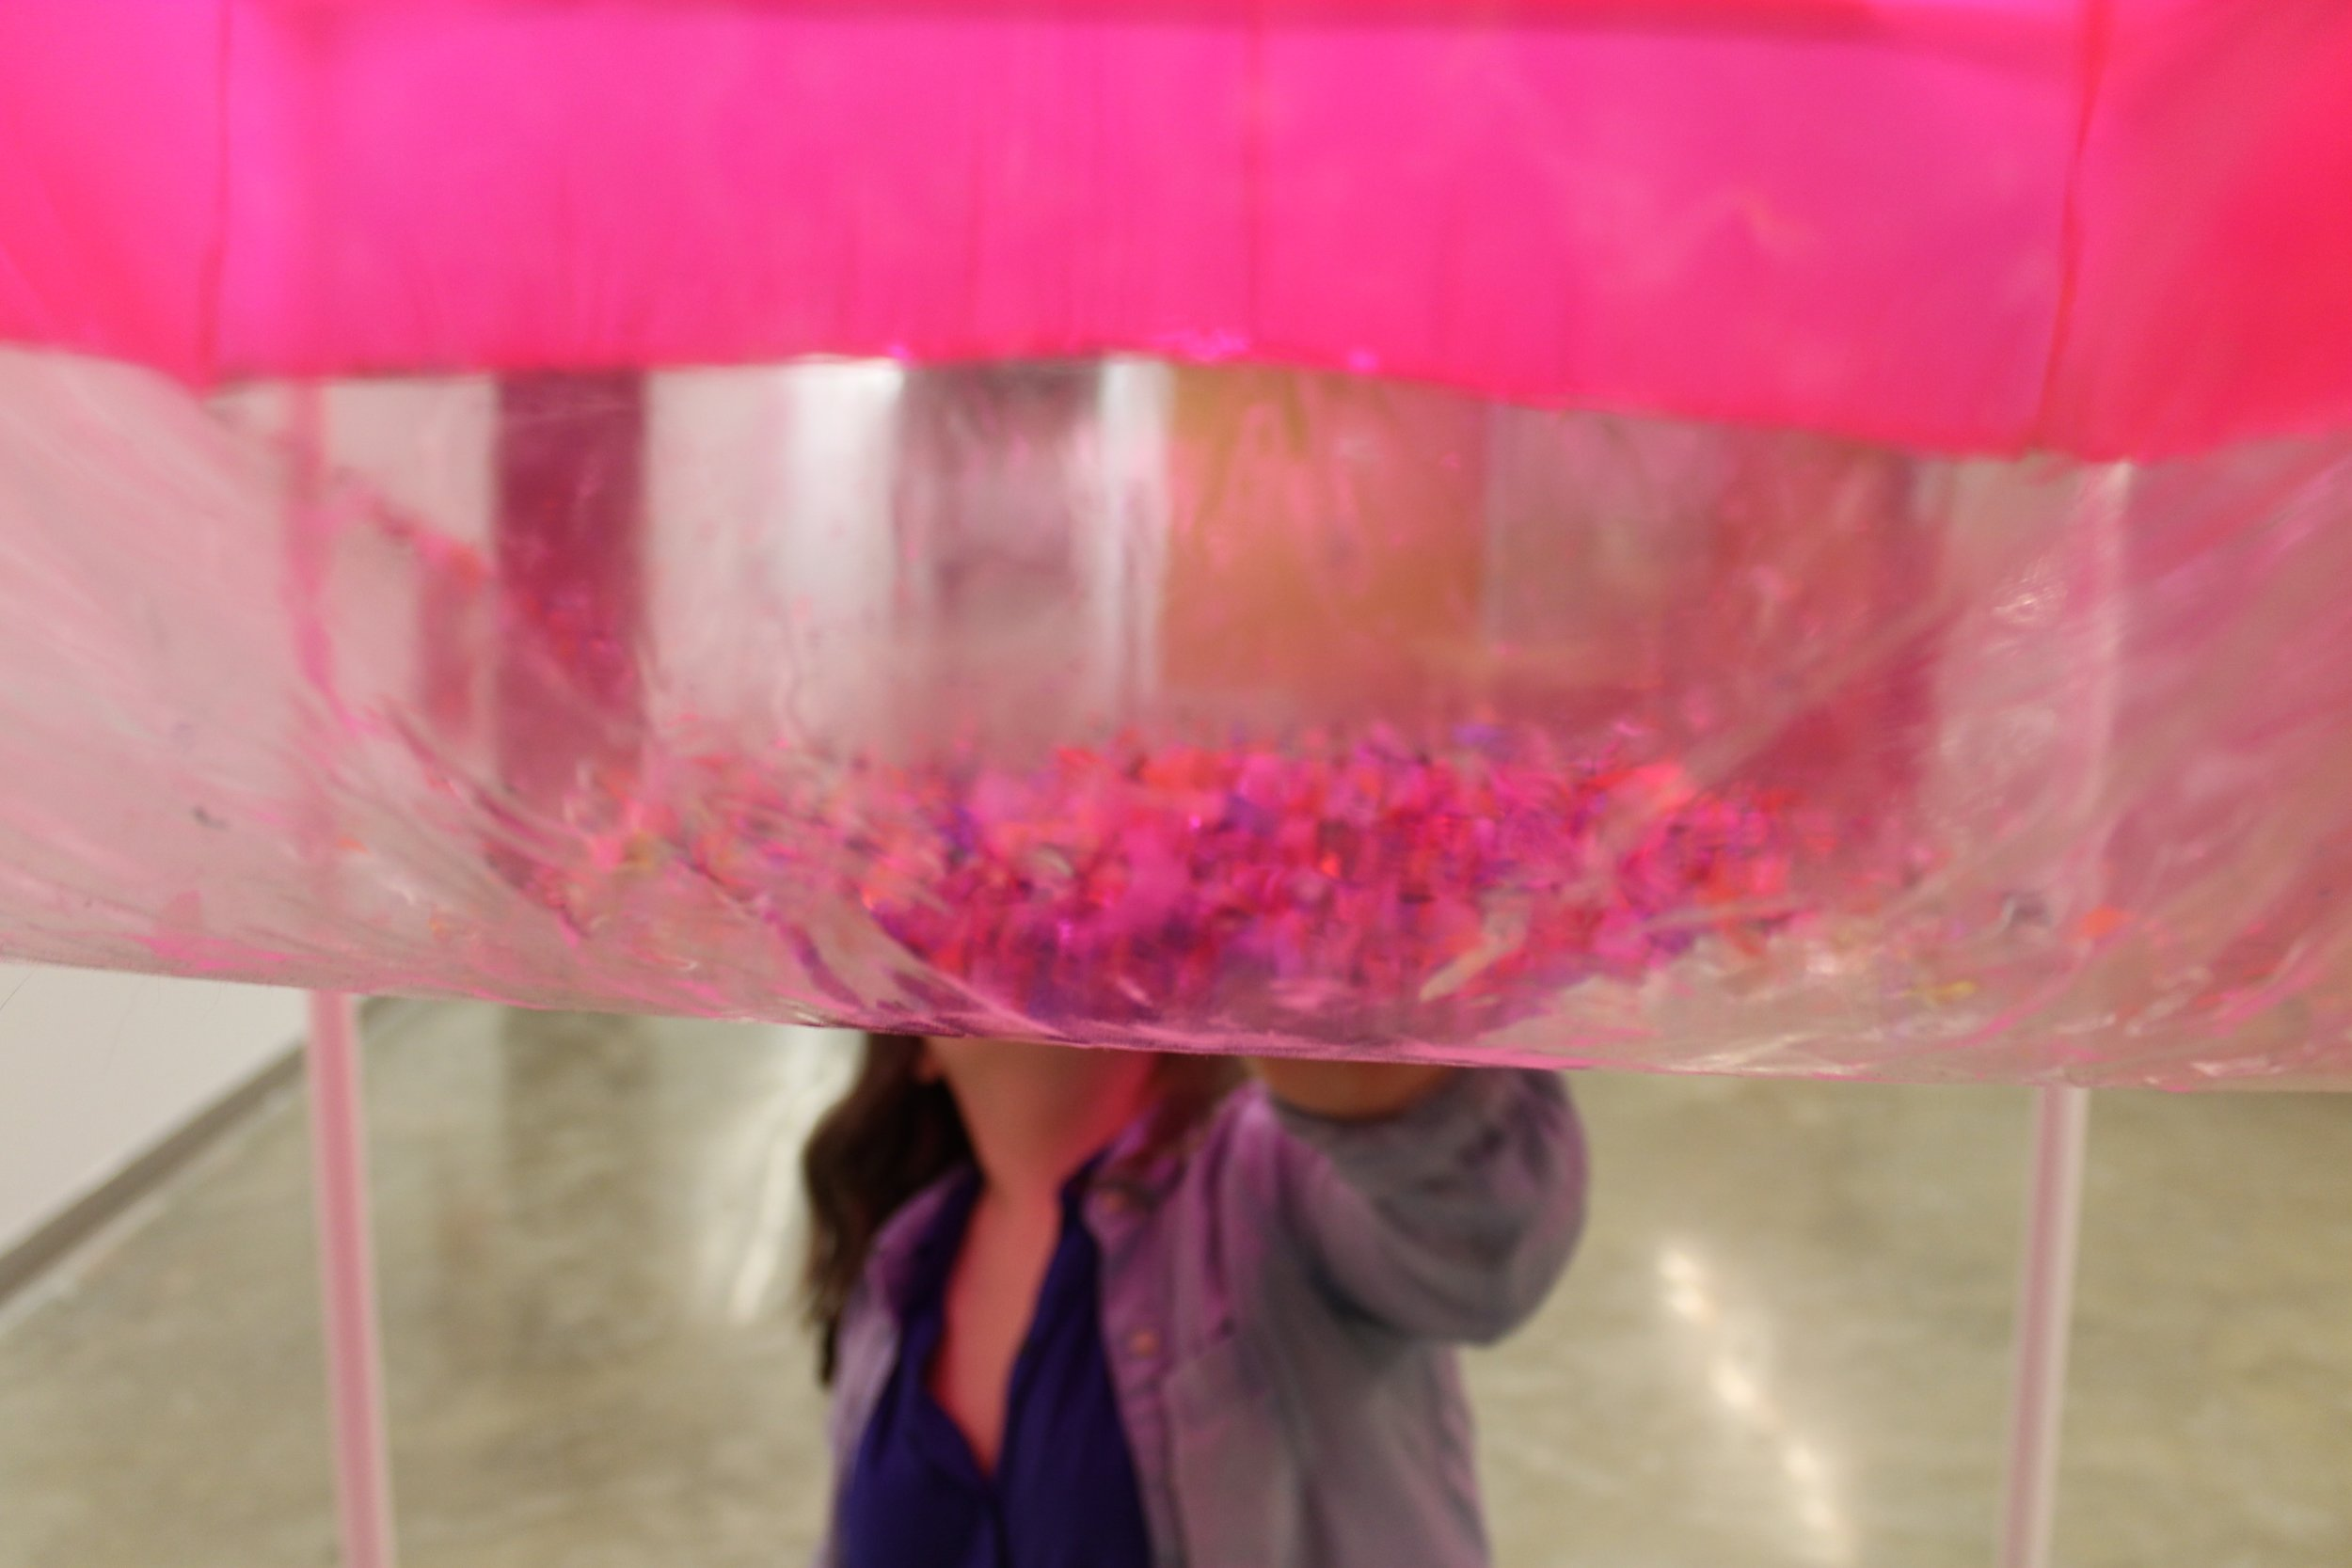 """Image: a large pink inflated cube fills the top half of the frame, it is semi-transparent and confetti is seen inside; Bri Beck is on the other side of the work, touching it with her hand, her face is not visible. """"Negotiating Space: Othered by Design"""" by Bri Beck, courtesy of the artist."""